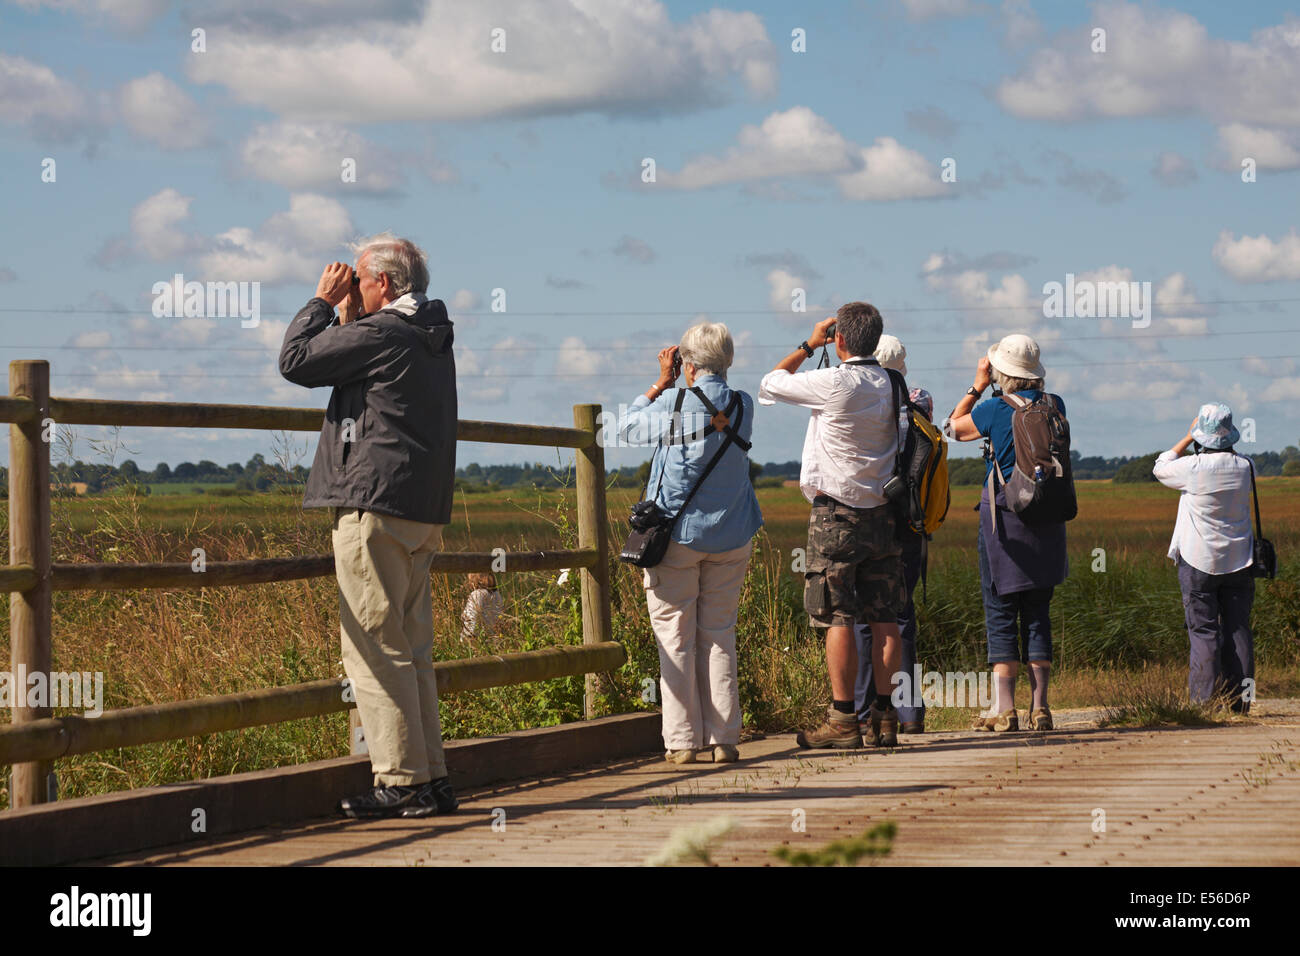 birdwatchers standing on bridge with binoculars at Normandy, France in July - Stock Image